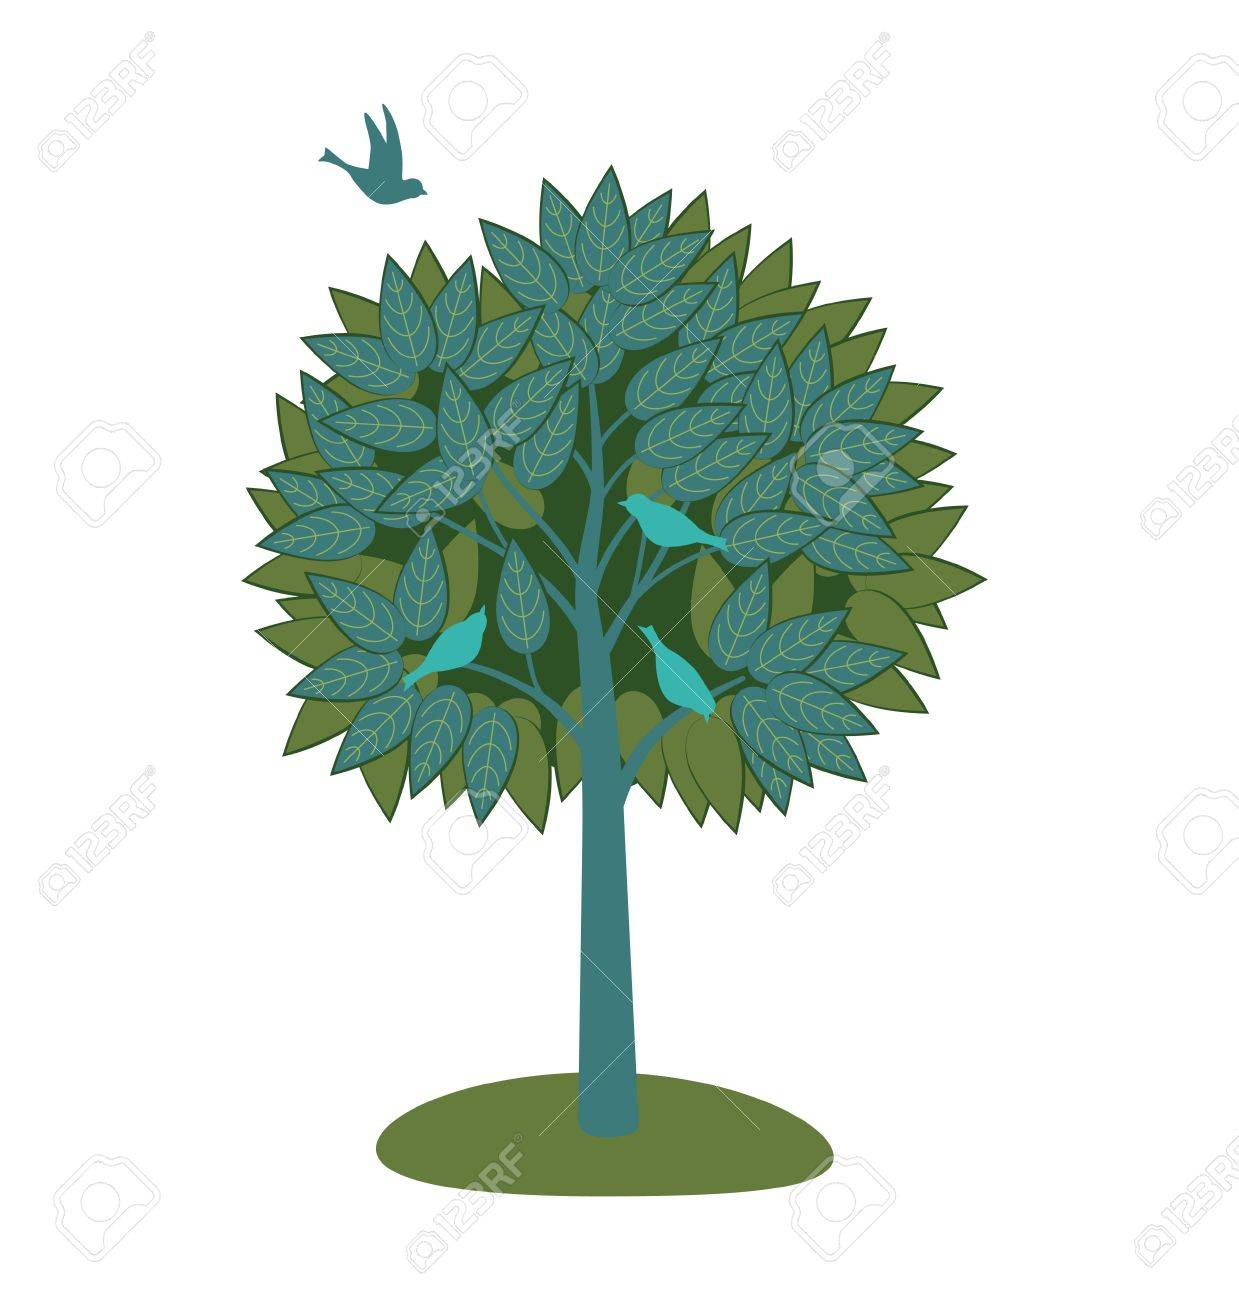 Stylized tree with lush foliage and birds. Stock Vector - 18256646